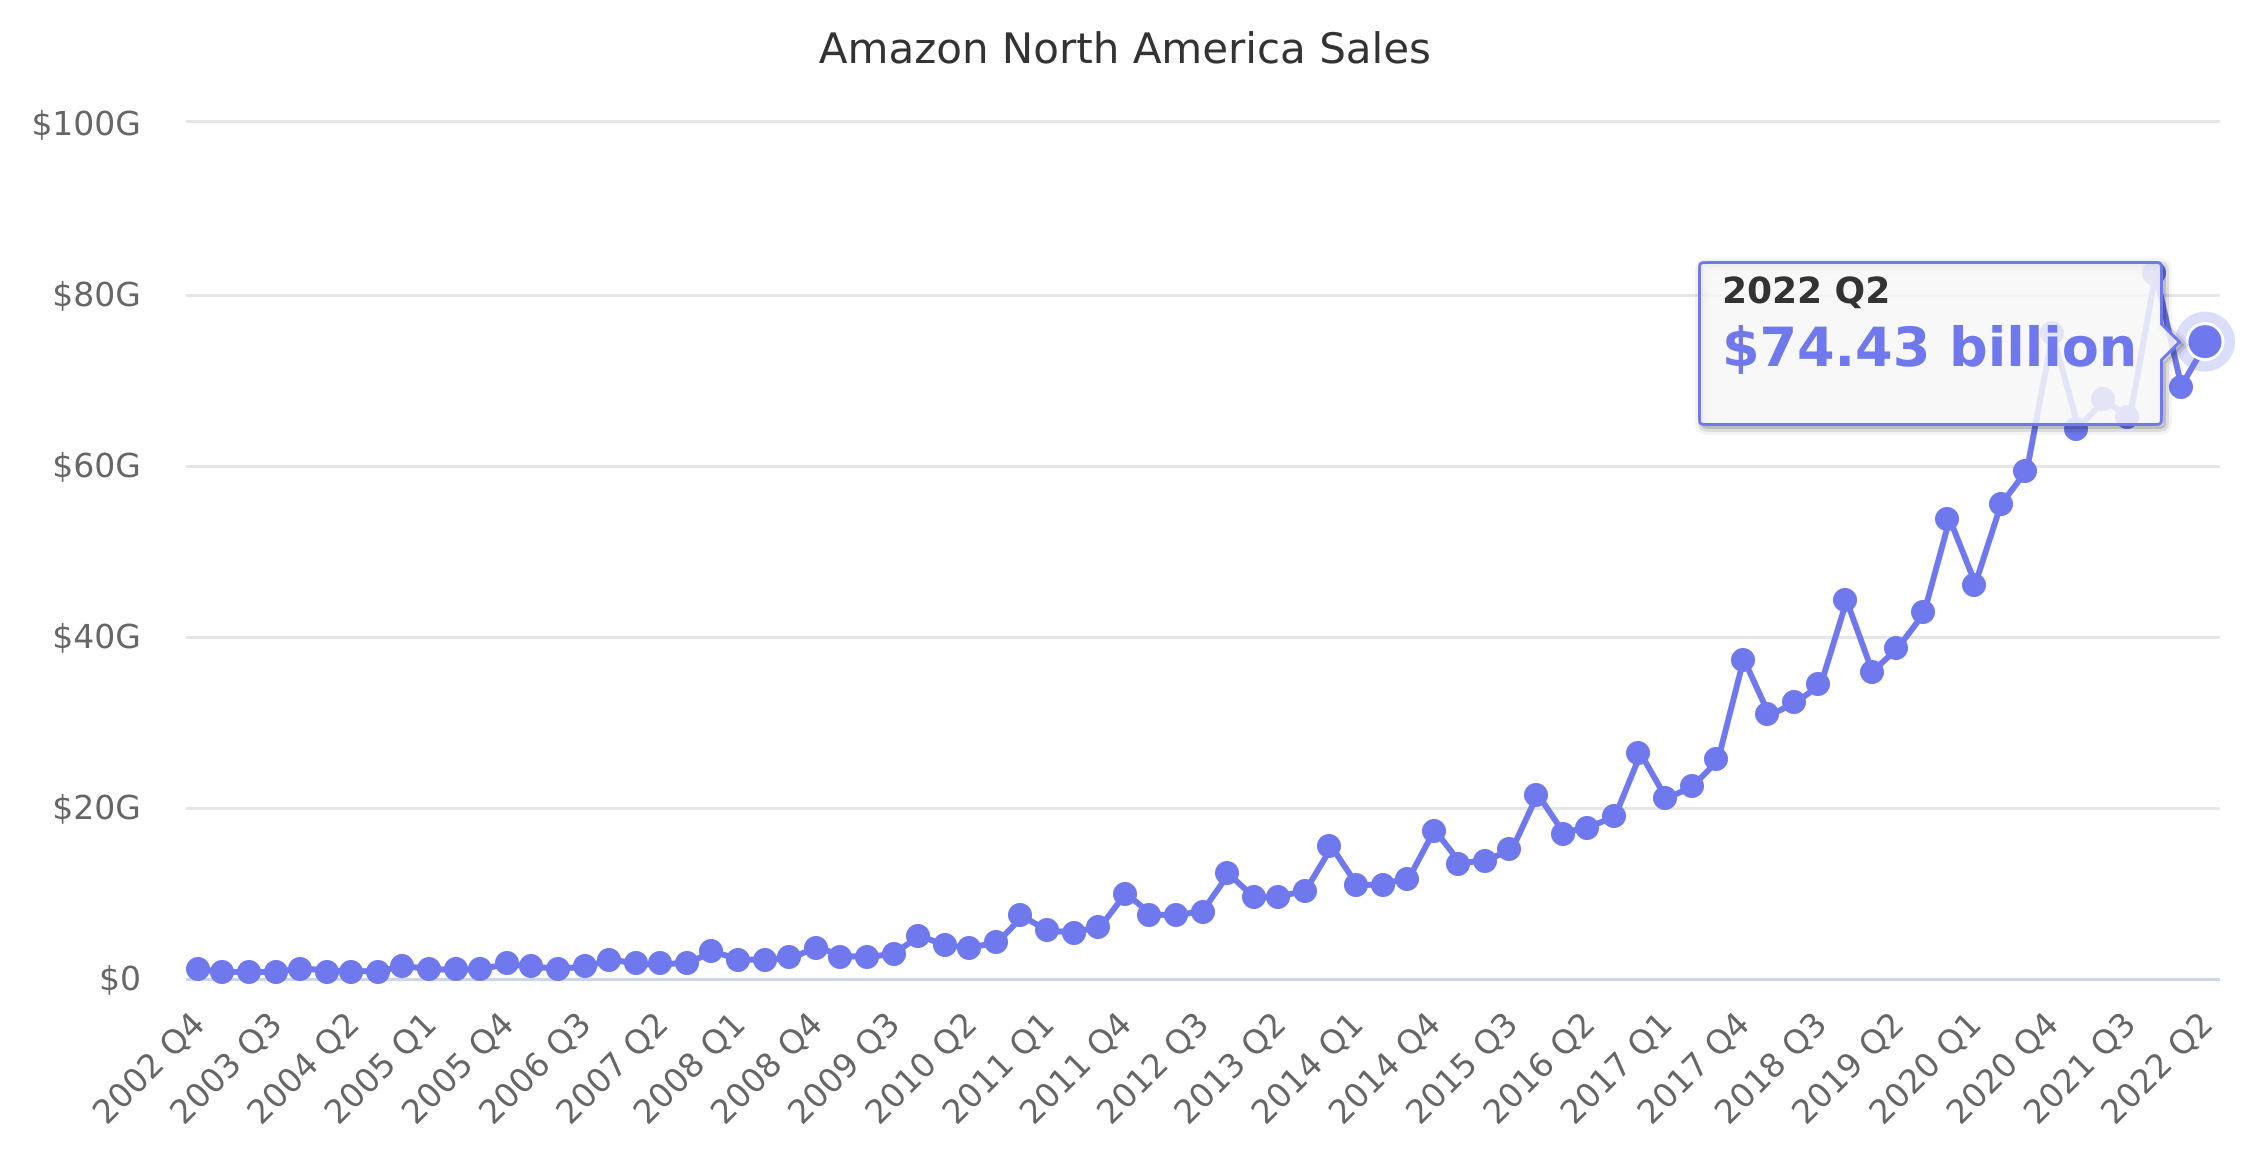 Amazon North America Sales 2002-2017